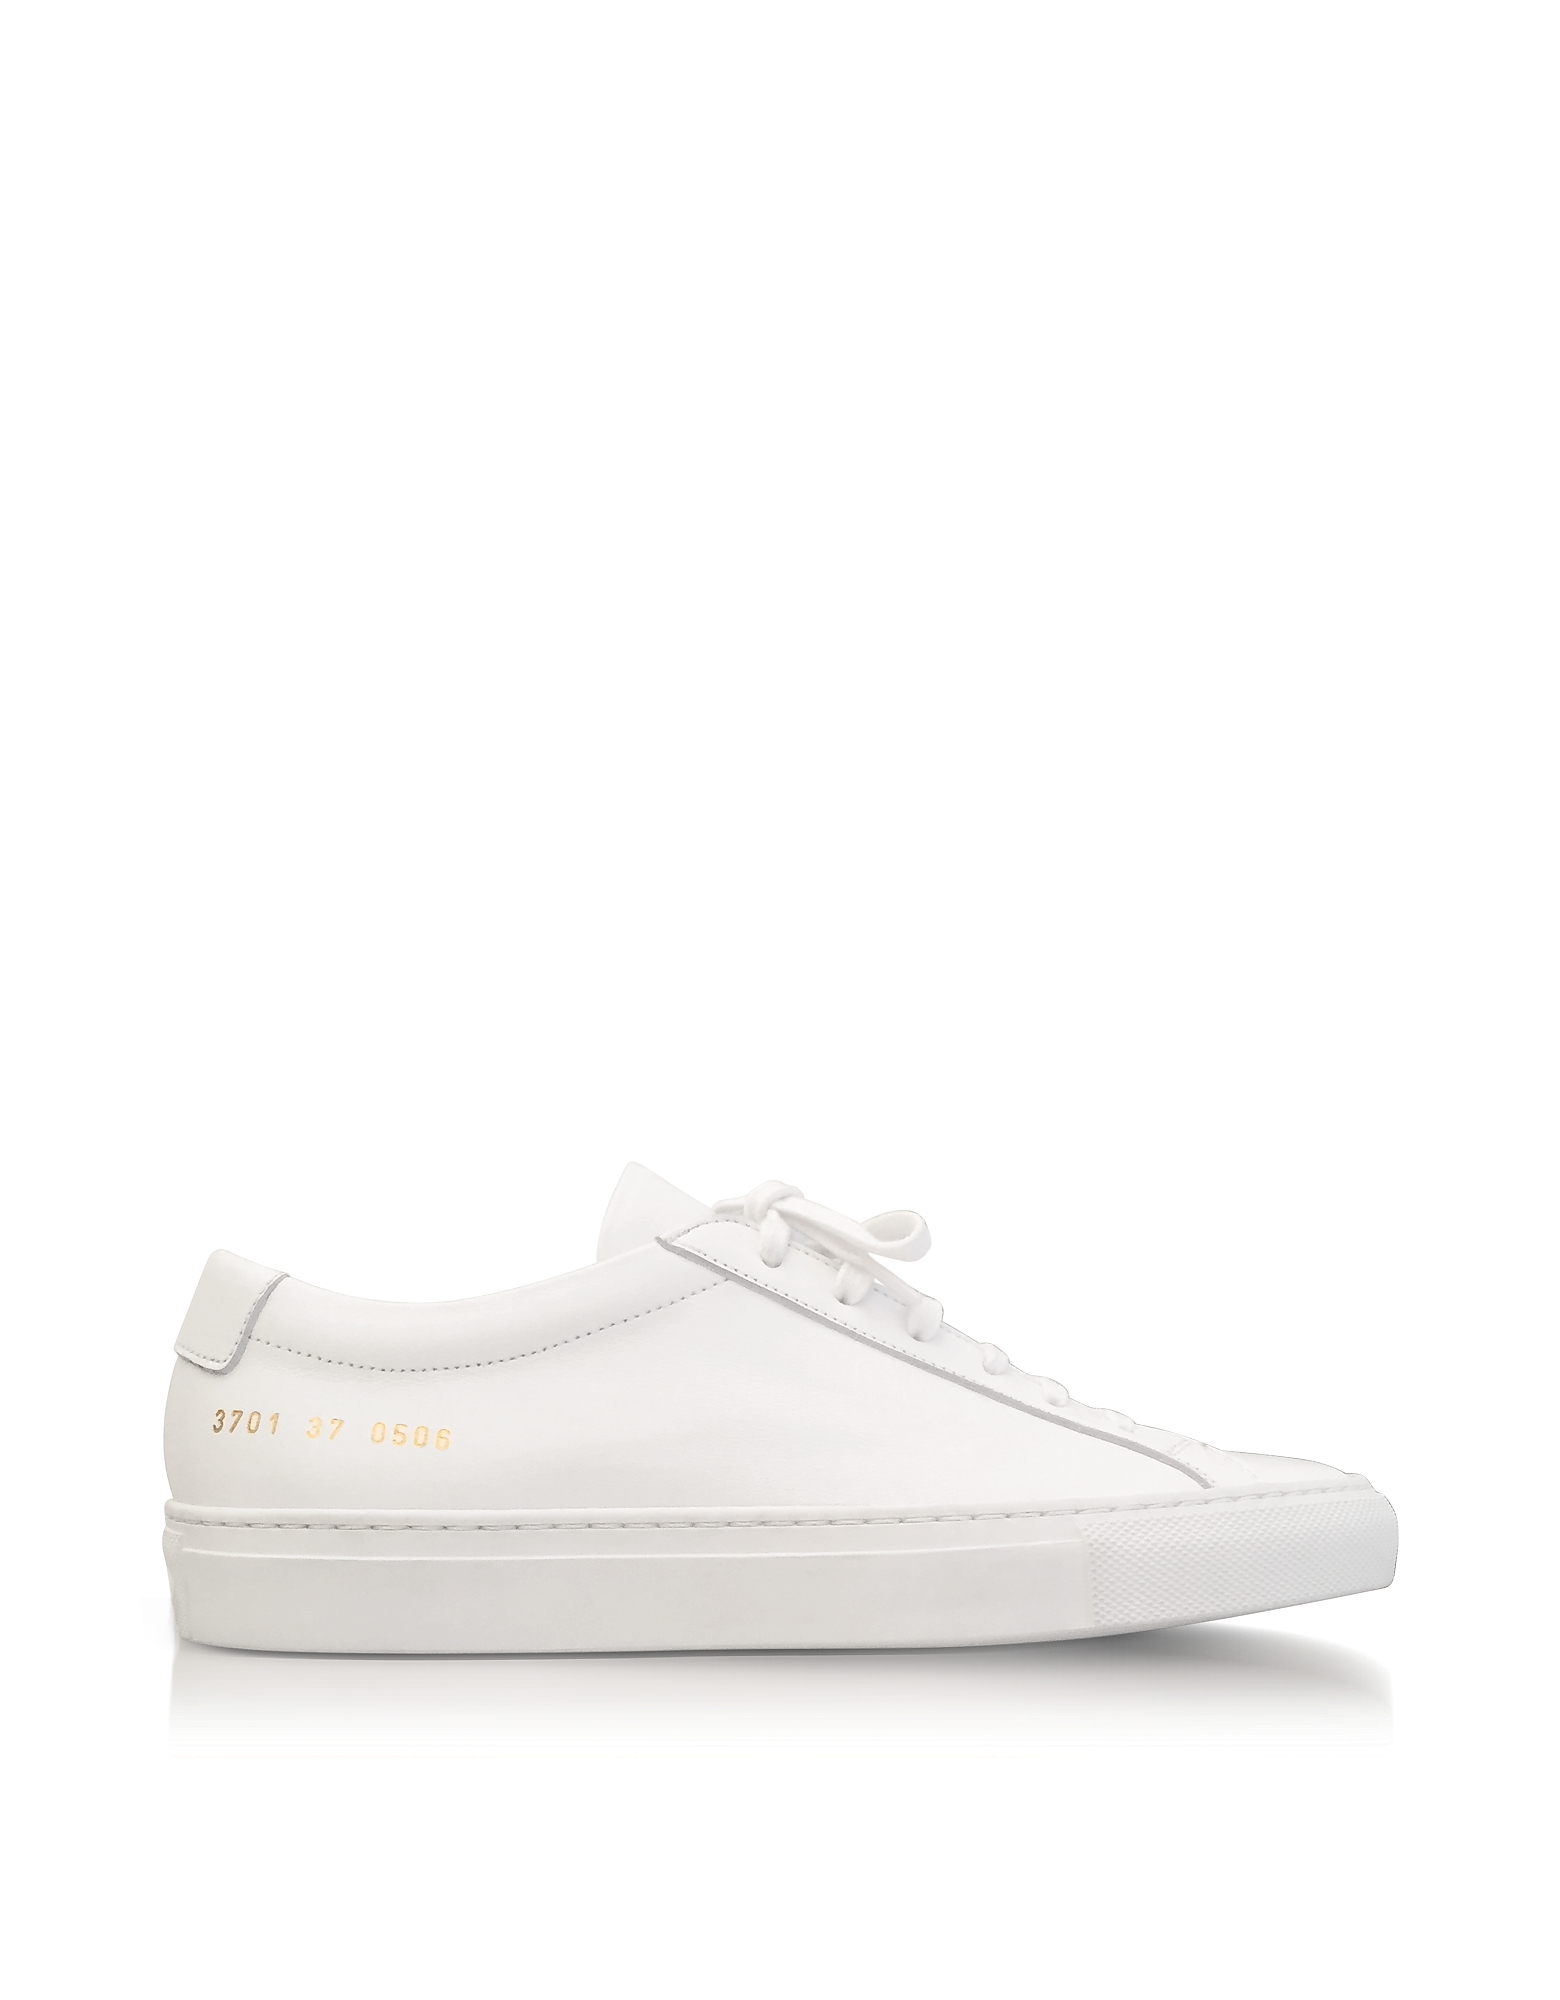 Common Projects Shoes, White Leather Achilles Original Low Top Women's Sneakers